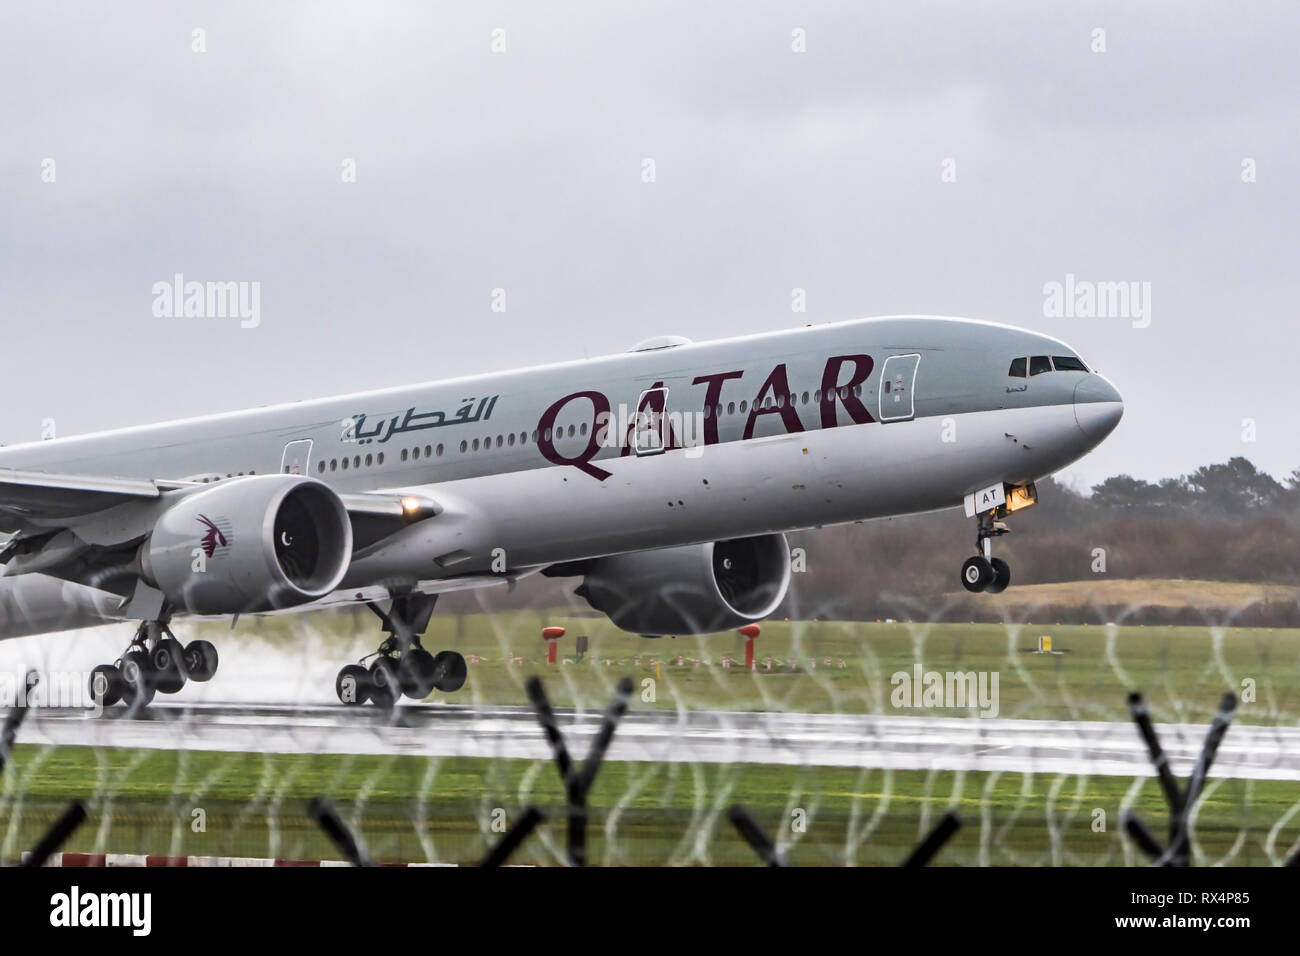 Qatar Airways Boeing 777 takes off. - Stock Image